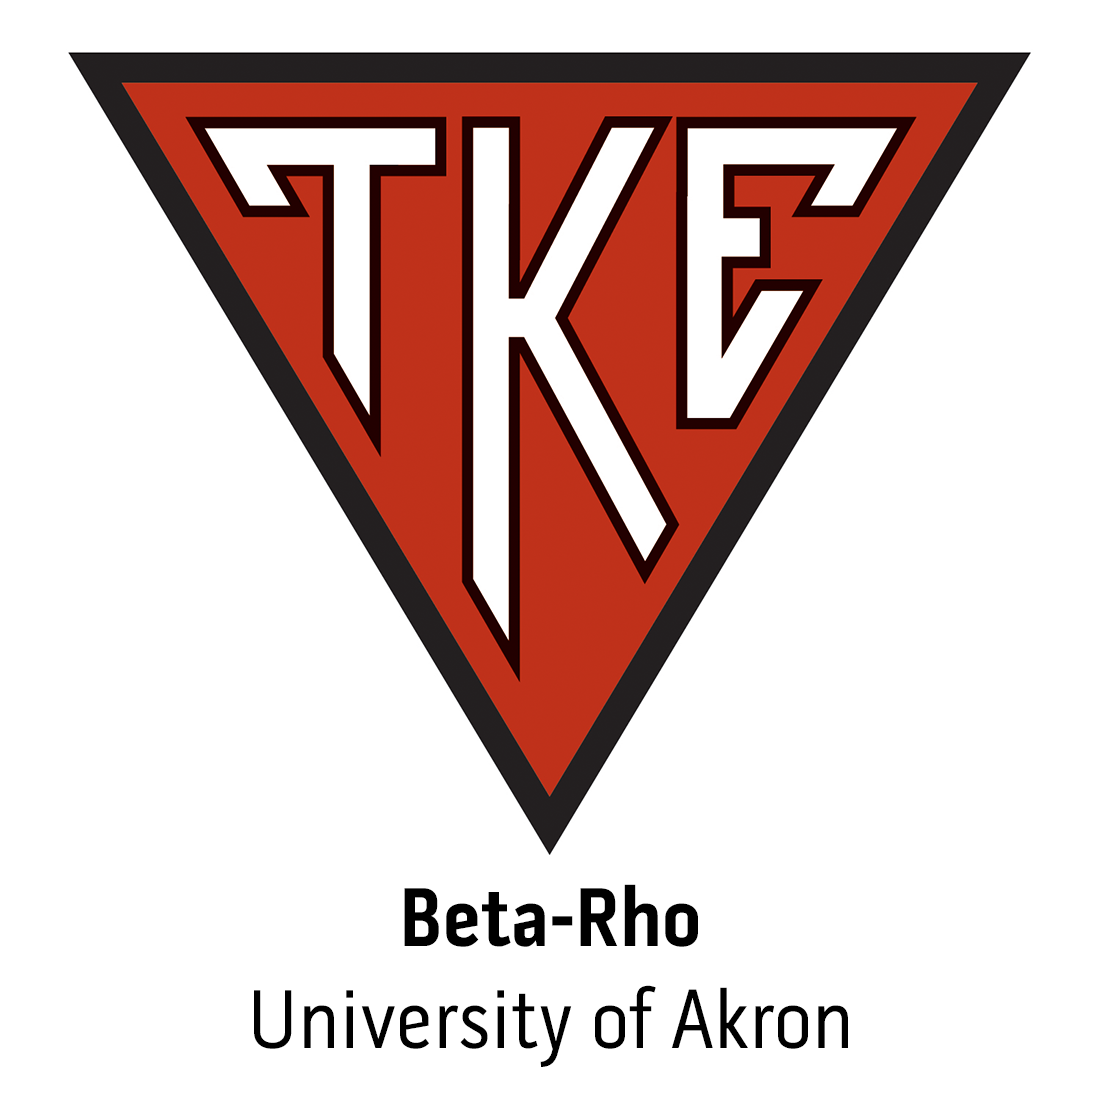 Beta-Rho C at University of Akron